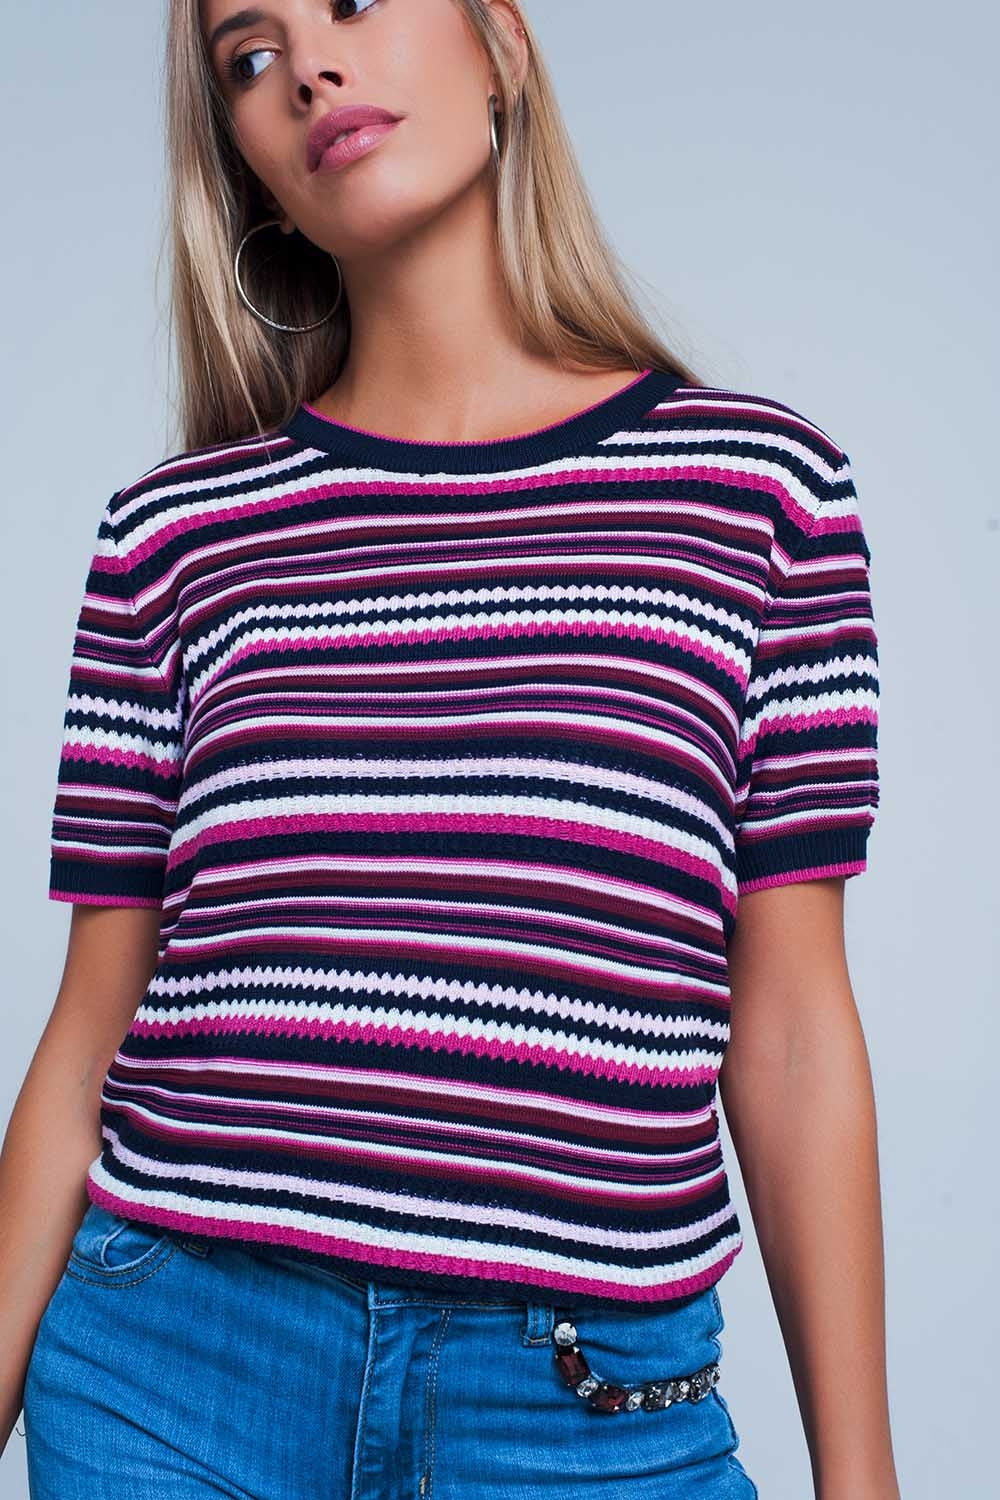 Purple Multi Pattern Short Sleeve Sweater-Women - Apparel - Sweaters - Pull Over-Product Details Pullover made of soft and stretchy polyester. It has wavy and straight stripes and it is finished off by a band of dark blue and fuschia along the hem, cuffs and neck line. This pullover has a round neck and short sleeves.-Keyomi-Sook